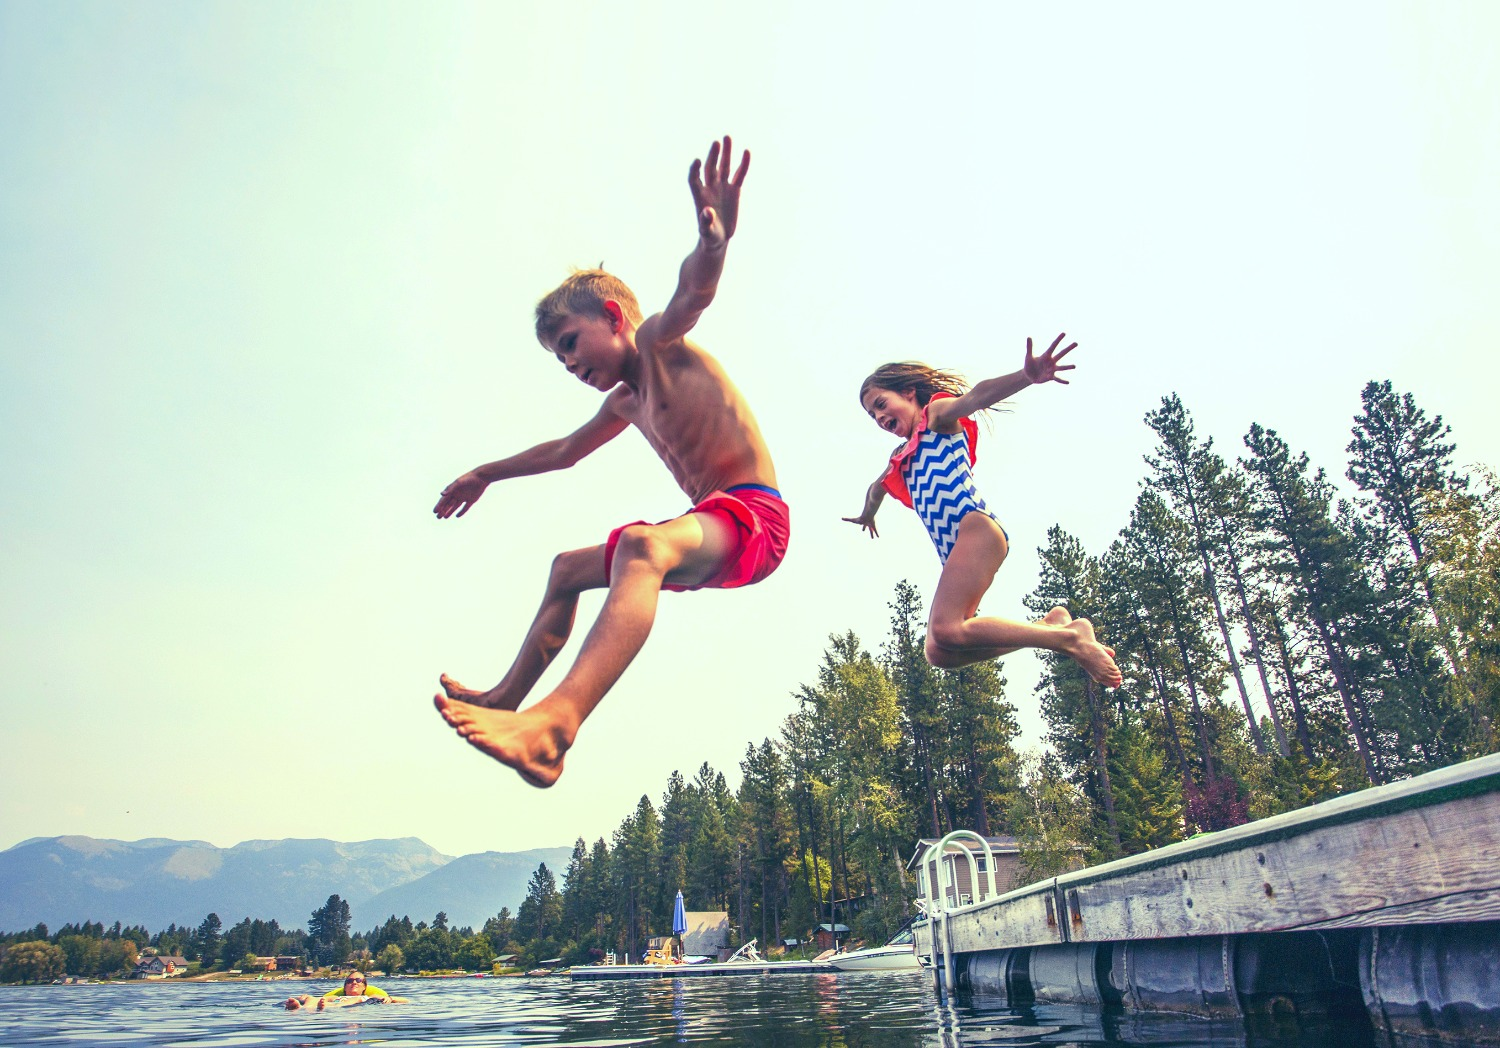 Kids jumping off the dock into a beautiful mountain lake. Having fun on a summer vacation at the lak